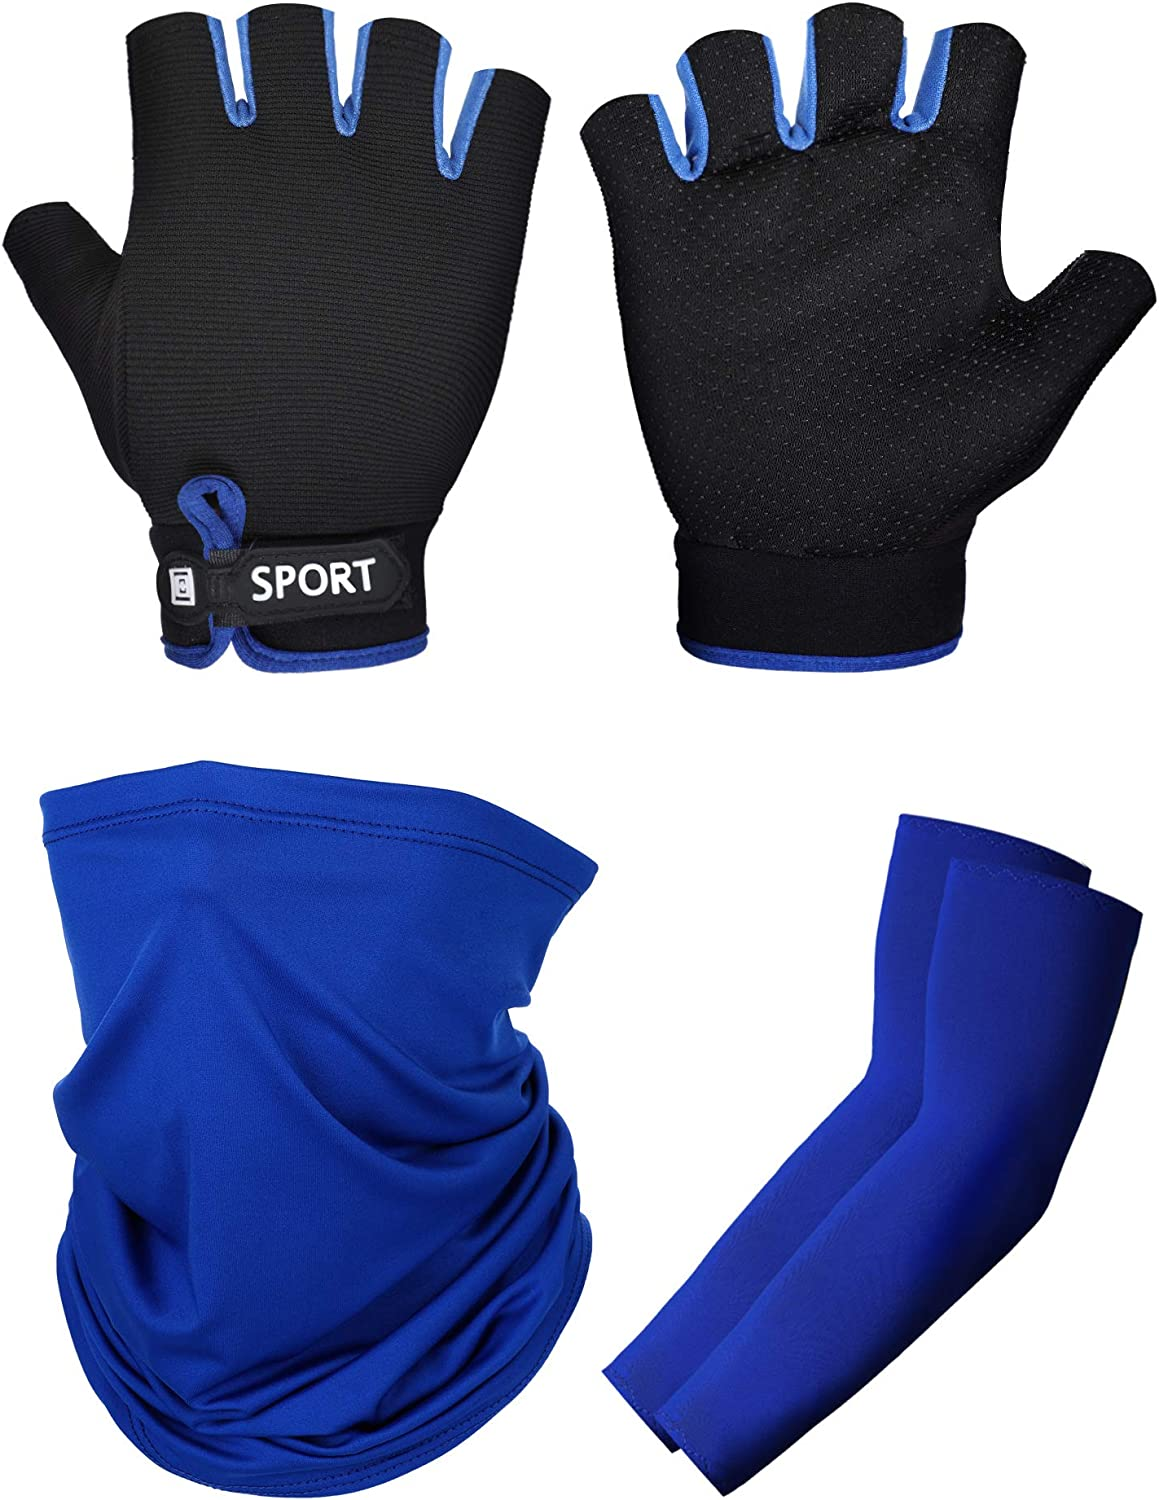 SATINIOR 3 Pack Sun Protection Kit Include Half Finger Cycling Fishing Gloves, Cooling Arm Sleeves and Neck Gaiter Face Cover